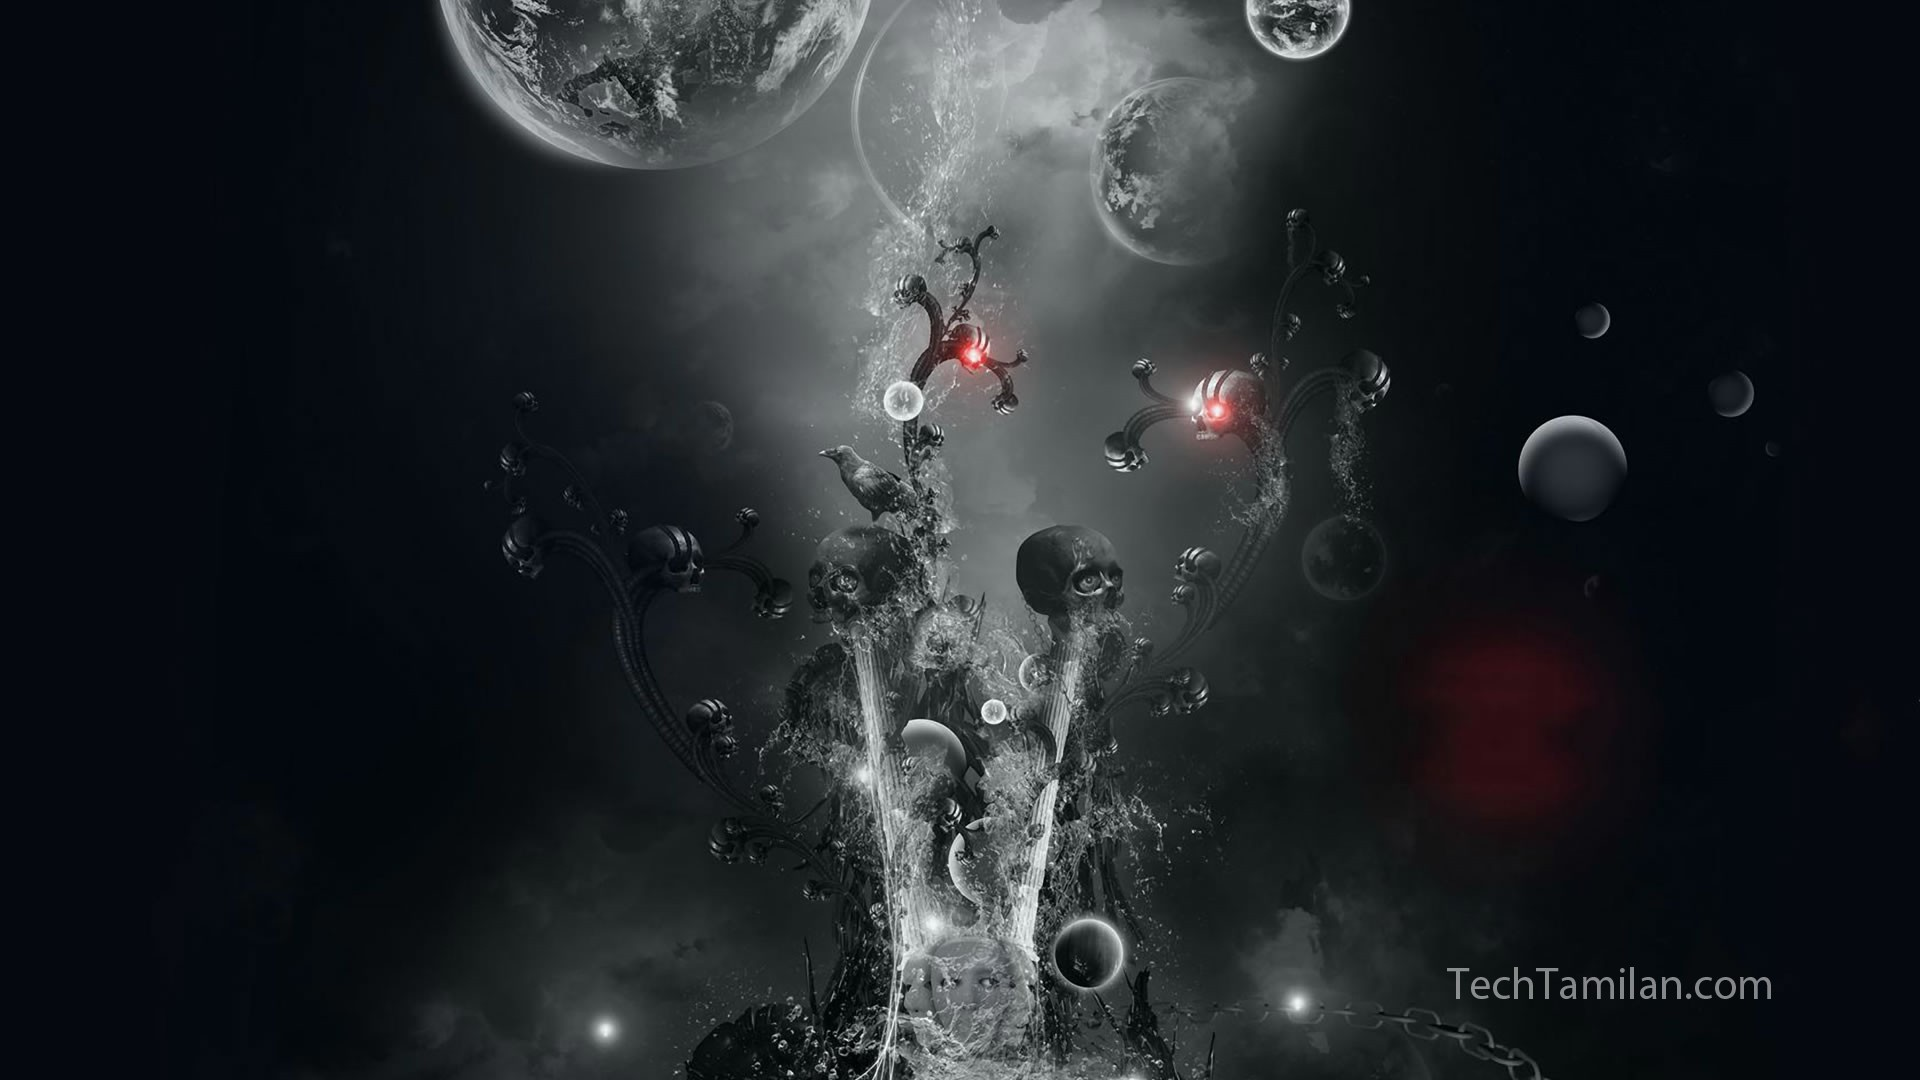 3d dark art background fresh hd wallpaper 19201080 in turnlol hd 1920x1080